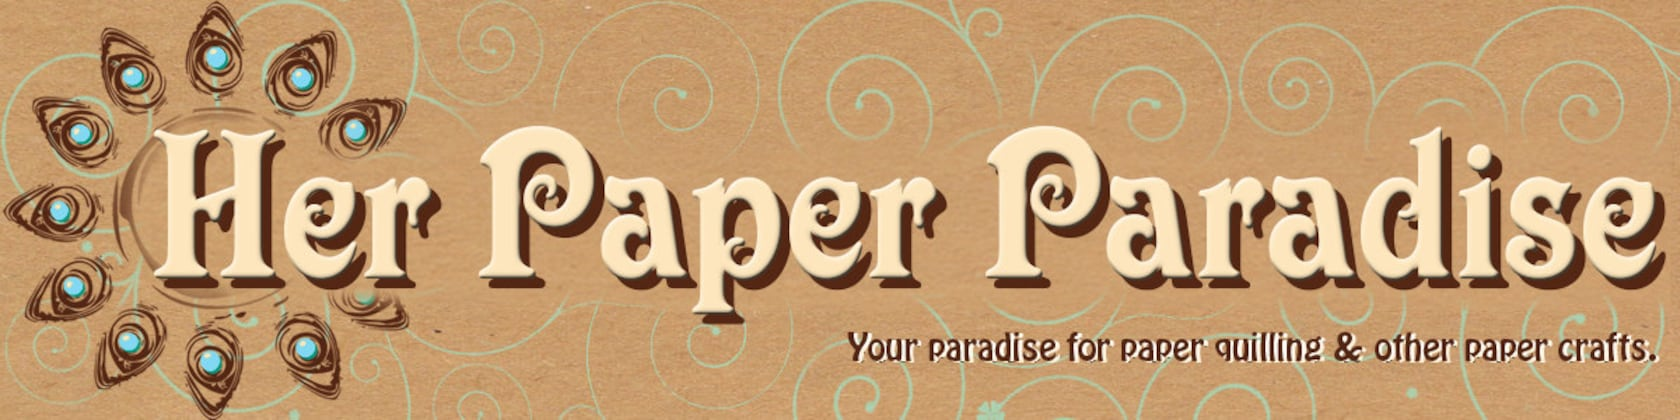 Paper quilling jewelry and accessories by herpaperparadise for Jewelry supply colorado springs